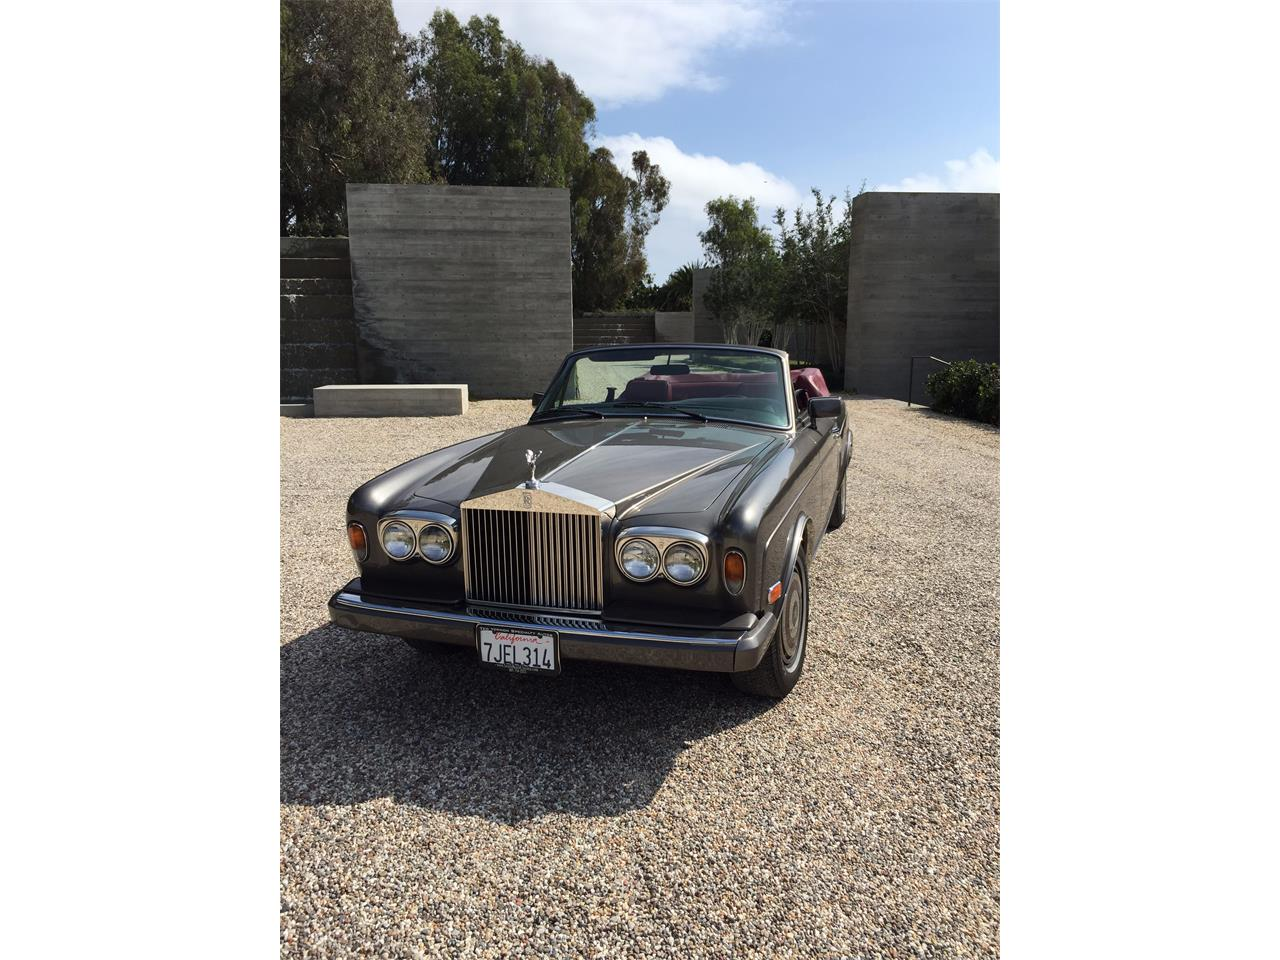 Large Picture of 1987 Rolls-Royce Corniche II located in California - $67,000.00 Offered by a Private Seller - PZCX